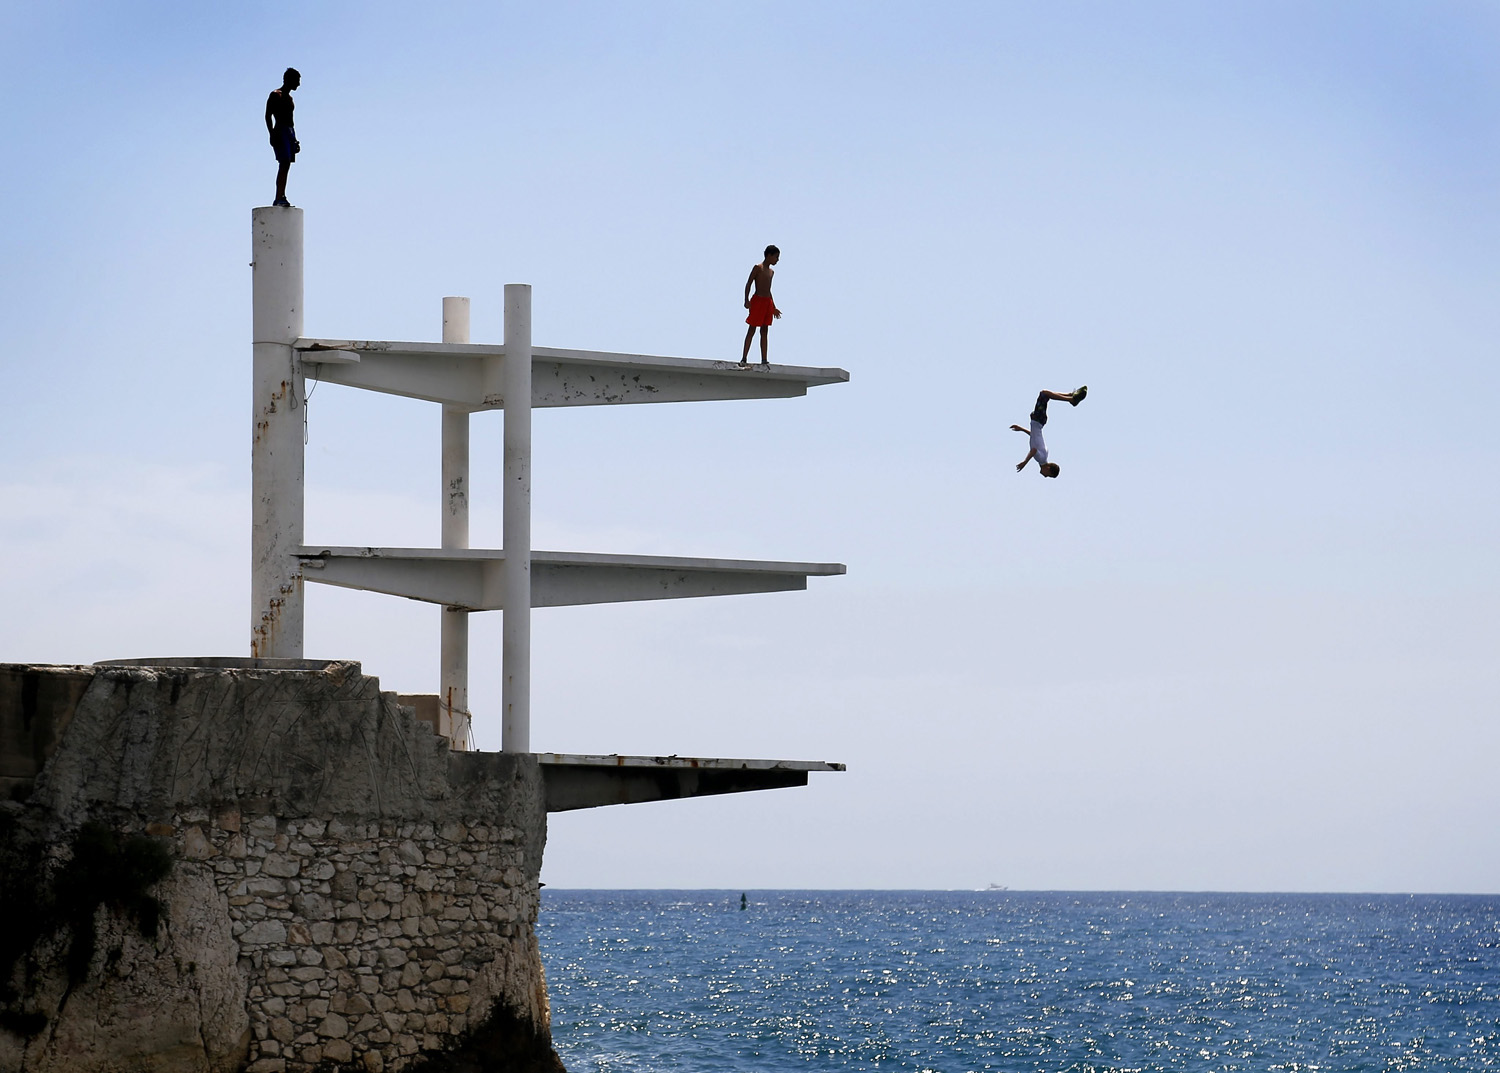 People dive into the Mediterranean Sea on a hot summer's day in Nice, southern France, July 21, 2014.